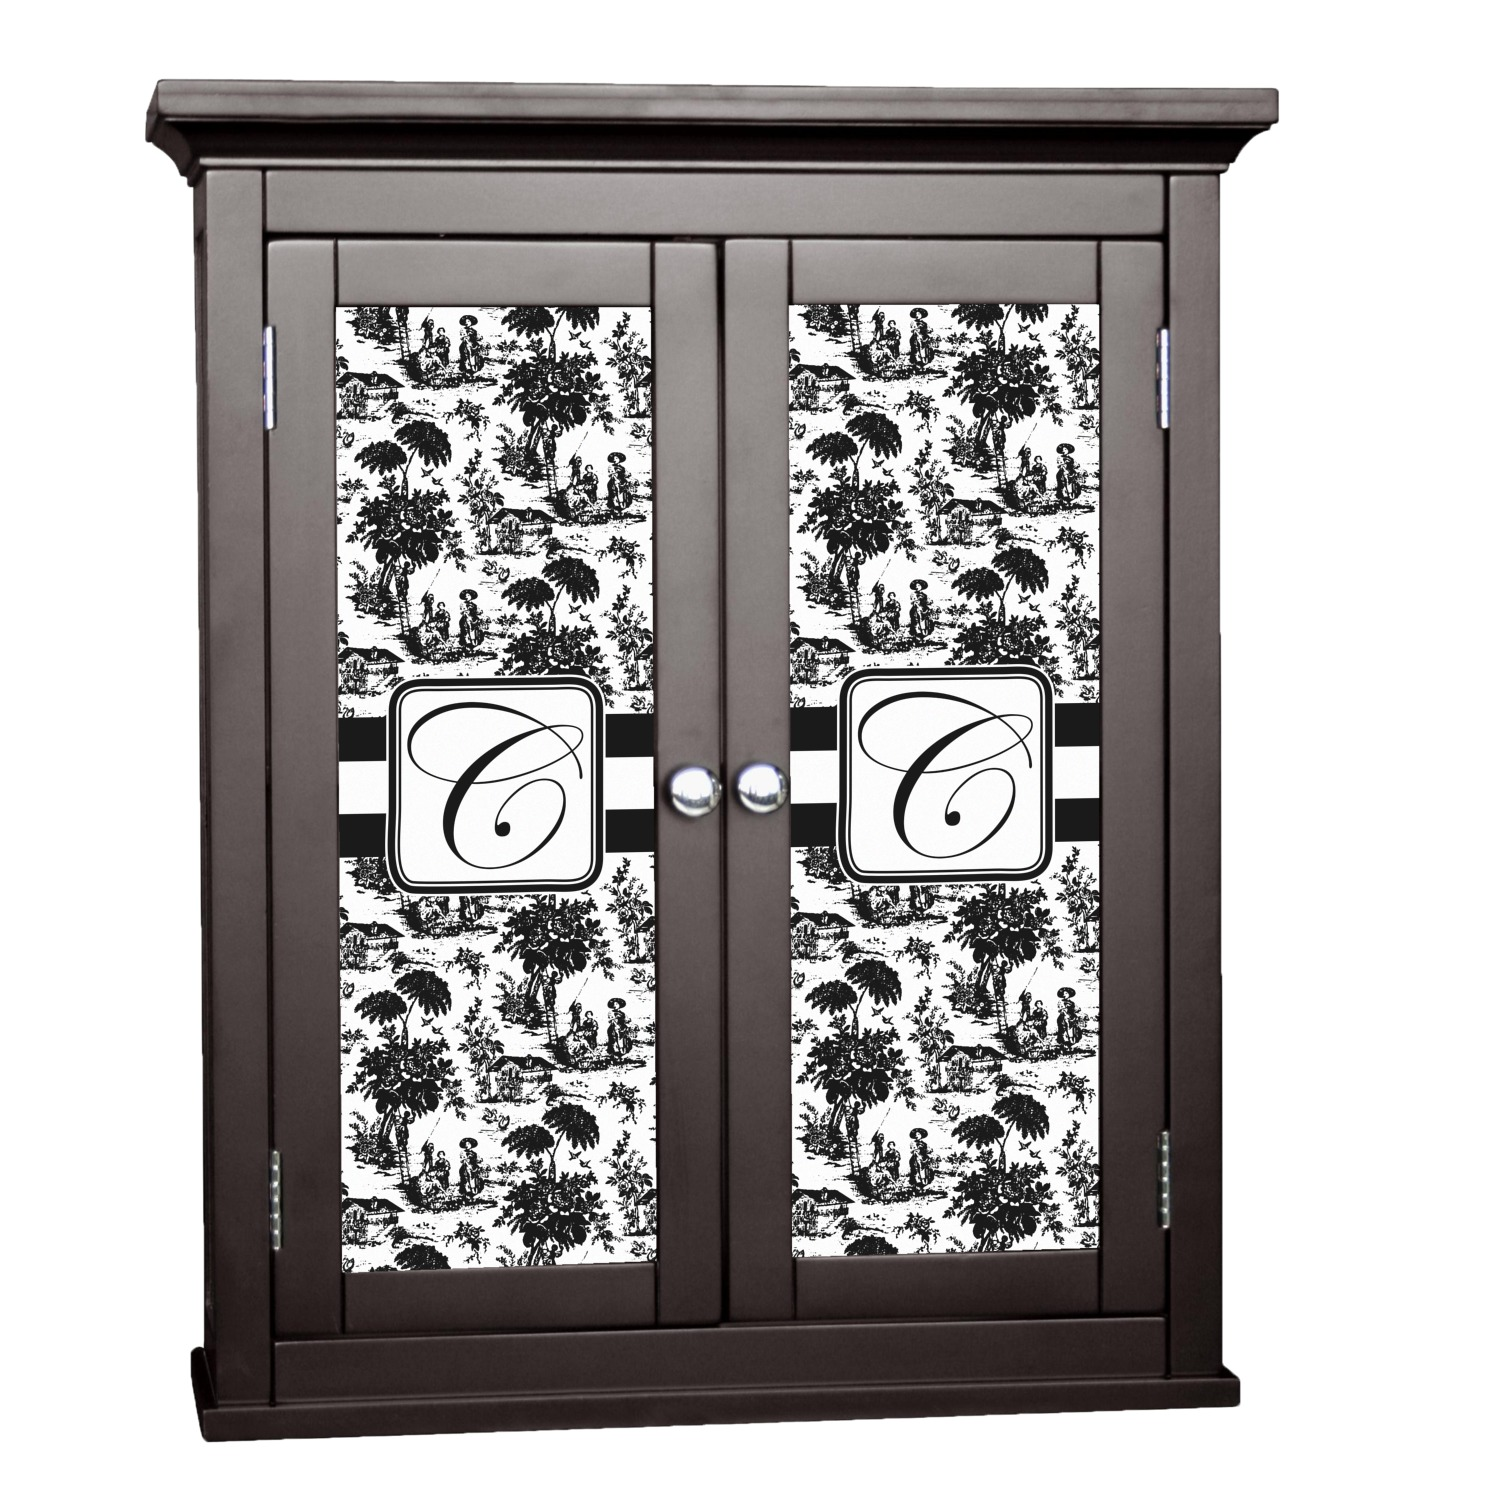 Toile Cabinet Decal Large Personalized Youcustomizeit